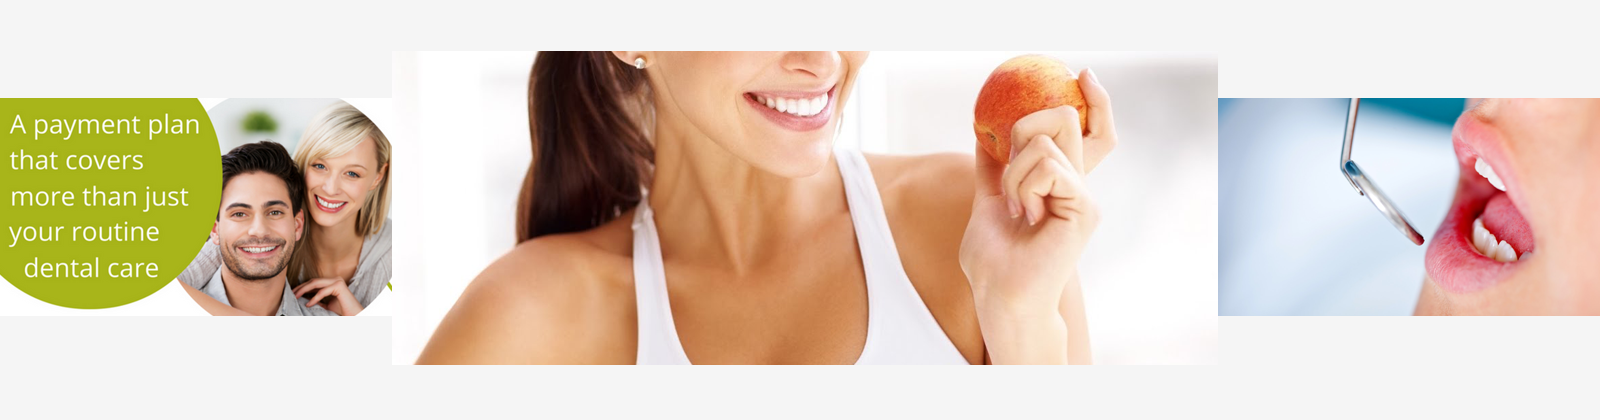 A lady with big smile holding an apple